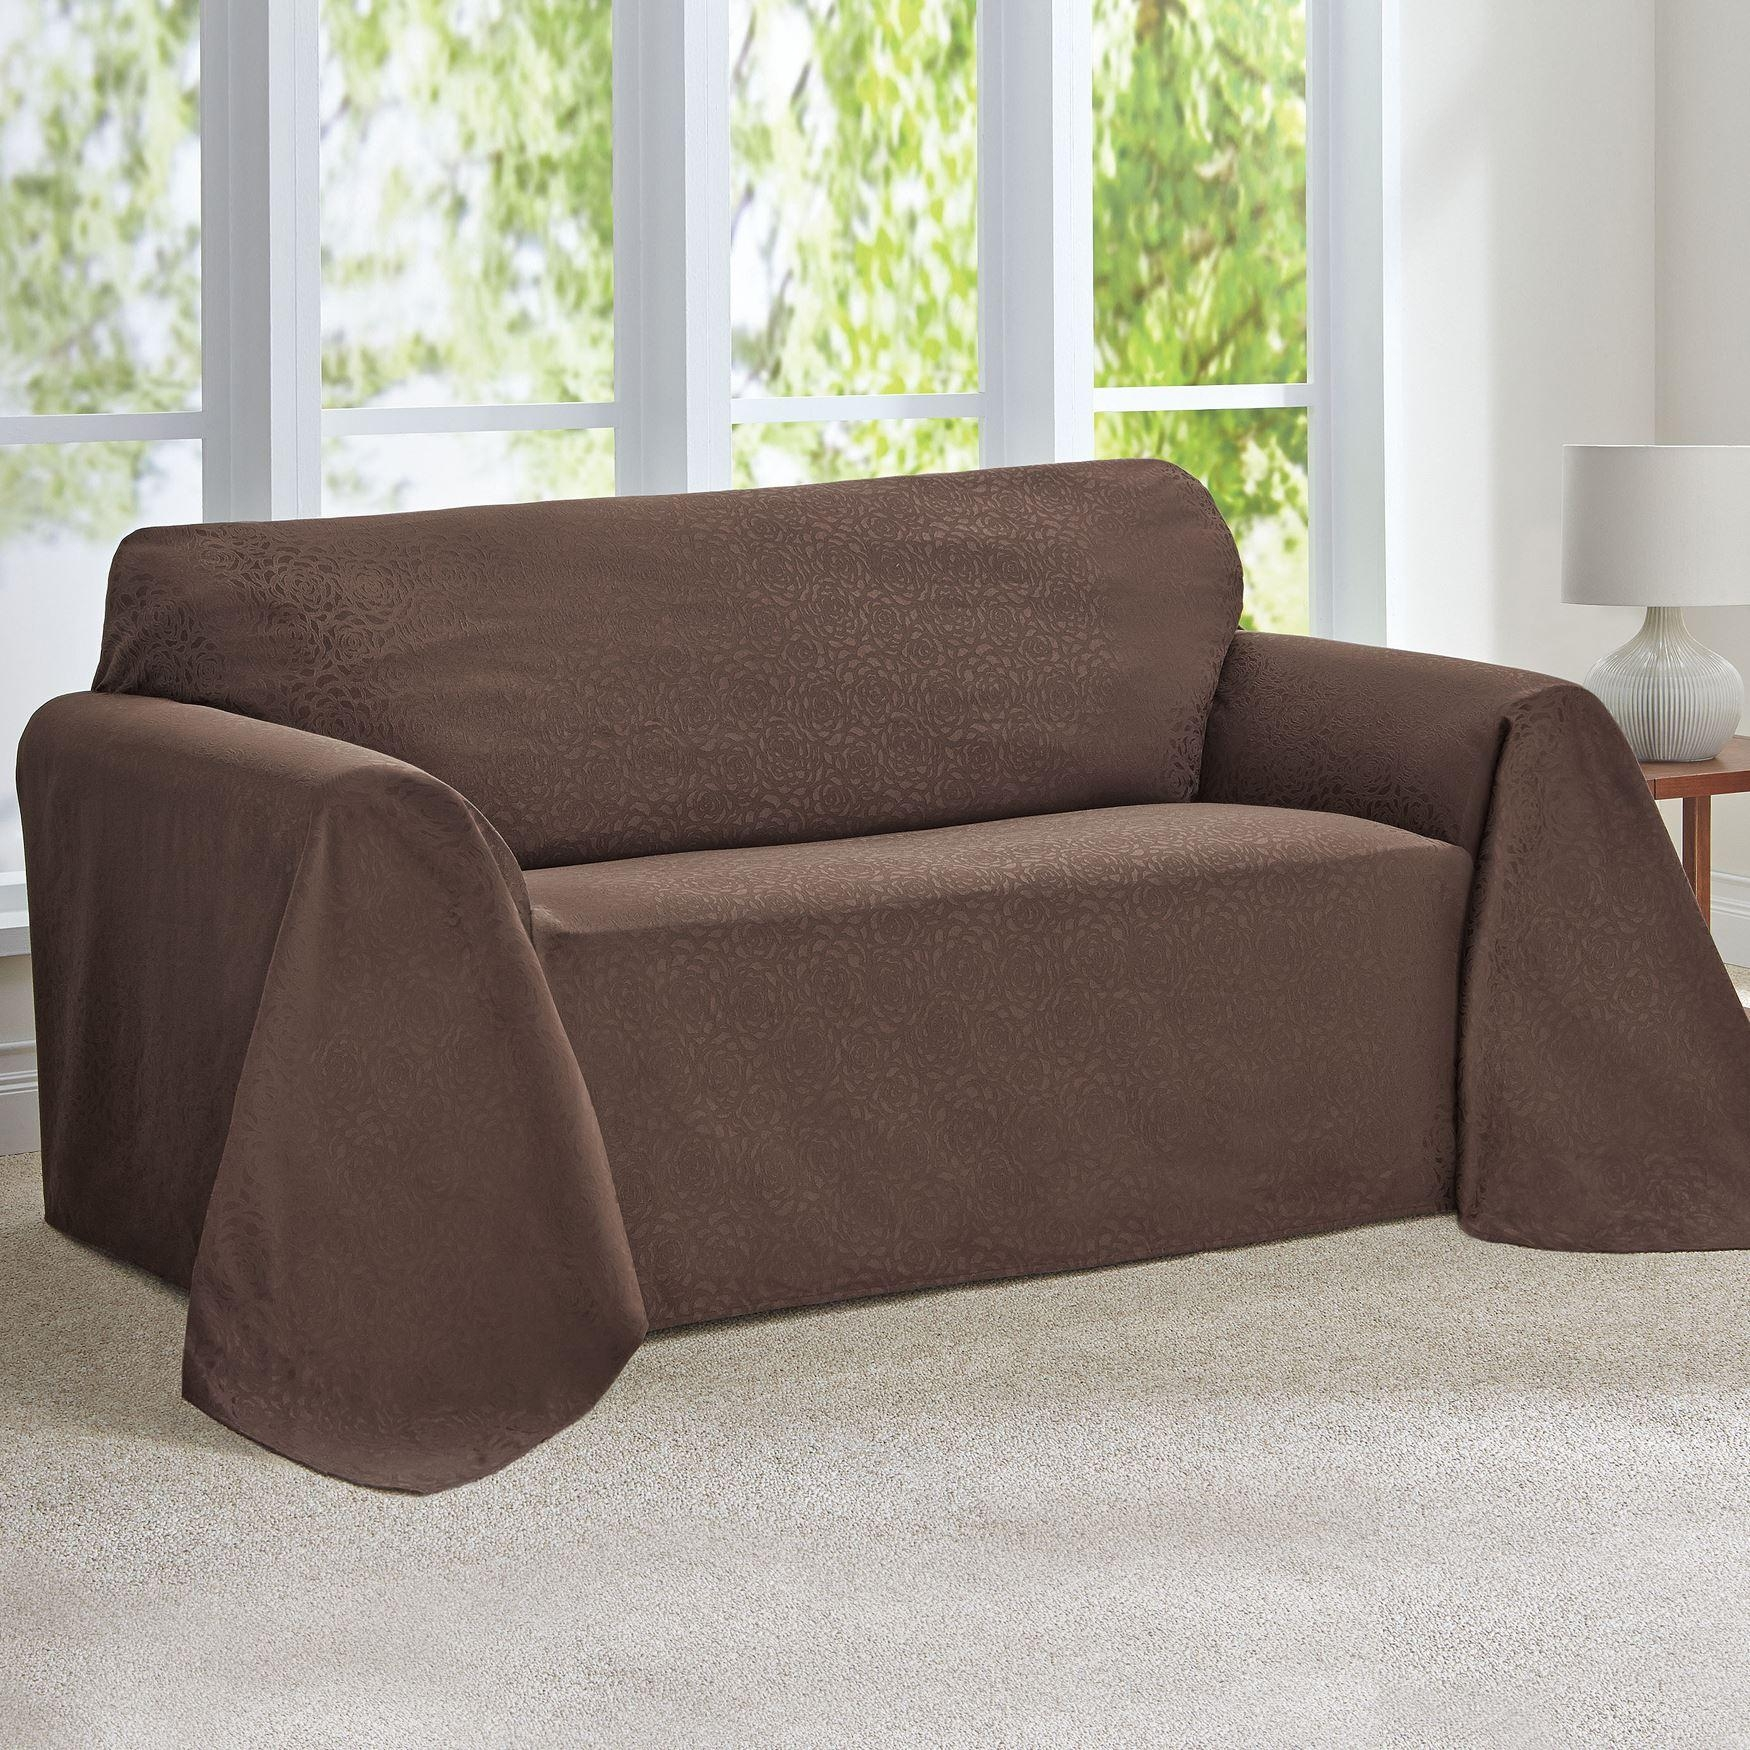 Furniture: Sofa Covers Walmart | Walmart Couch Covers | Slip In Covers For Sofas And Chairs (Image 11 of 20)